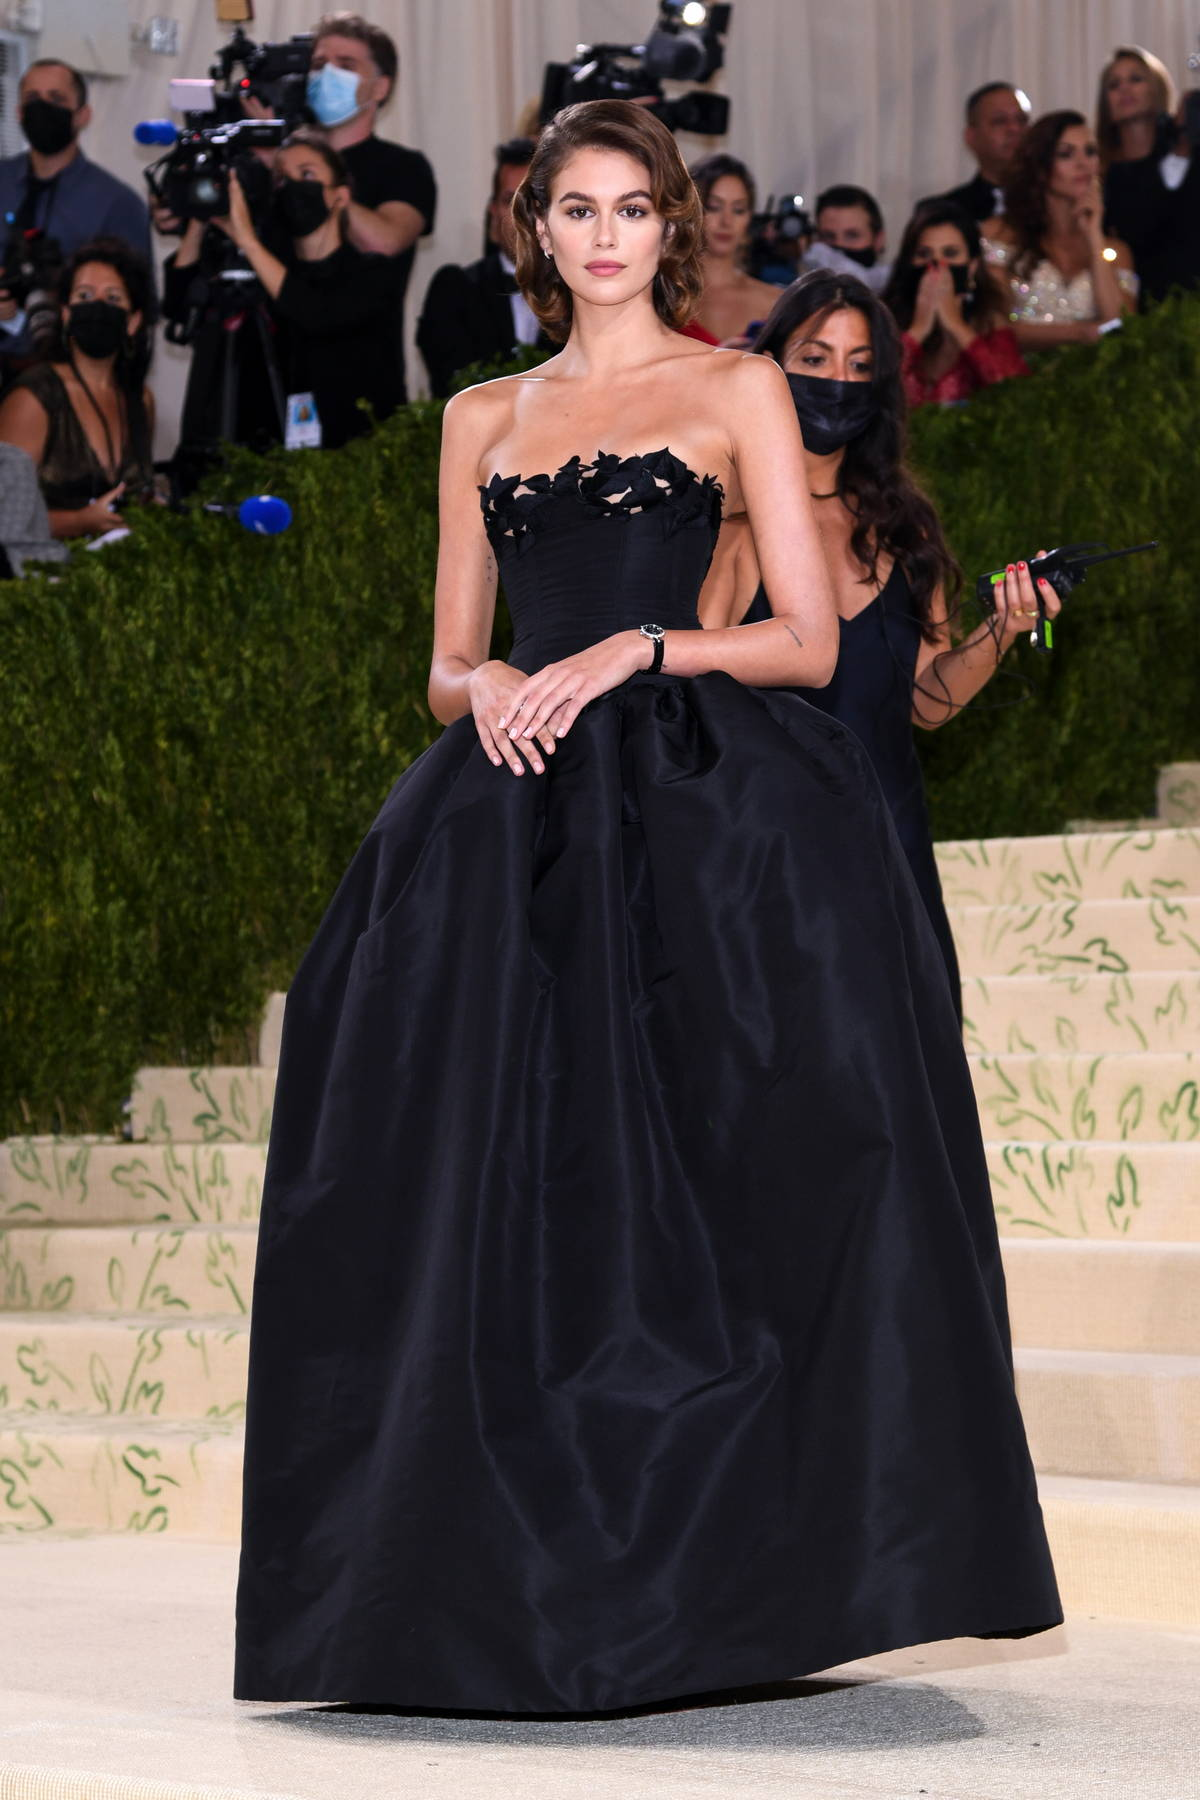 Kaia Gerber attends The Met Gala Celebrating In America: A Lexicon Of Fashion at Metropolitan Museum of Art in New York City